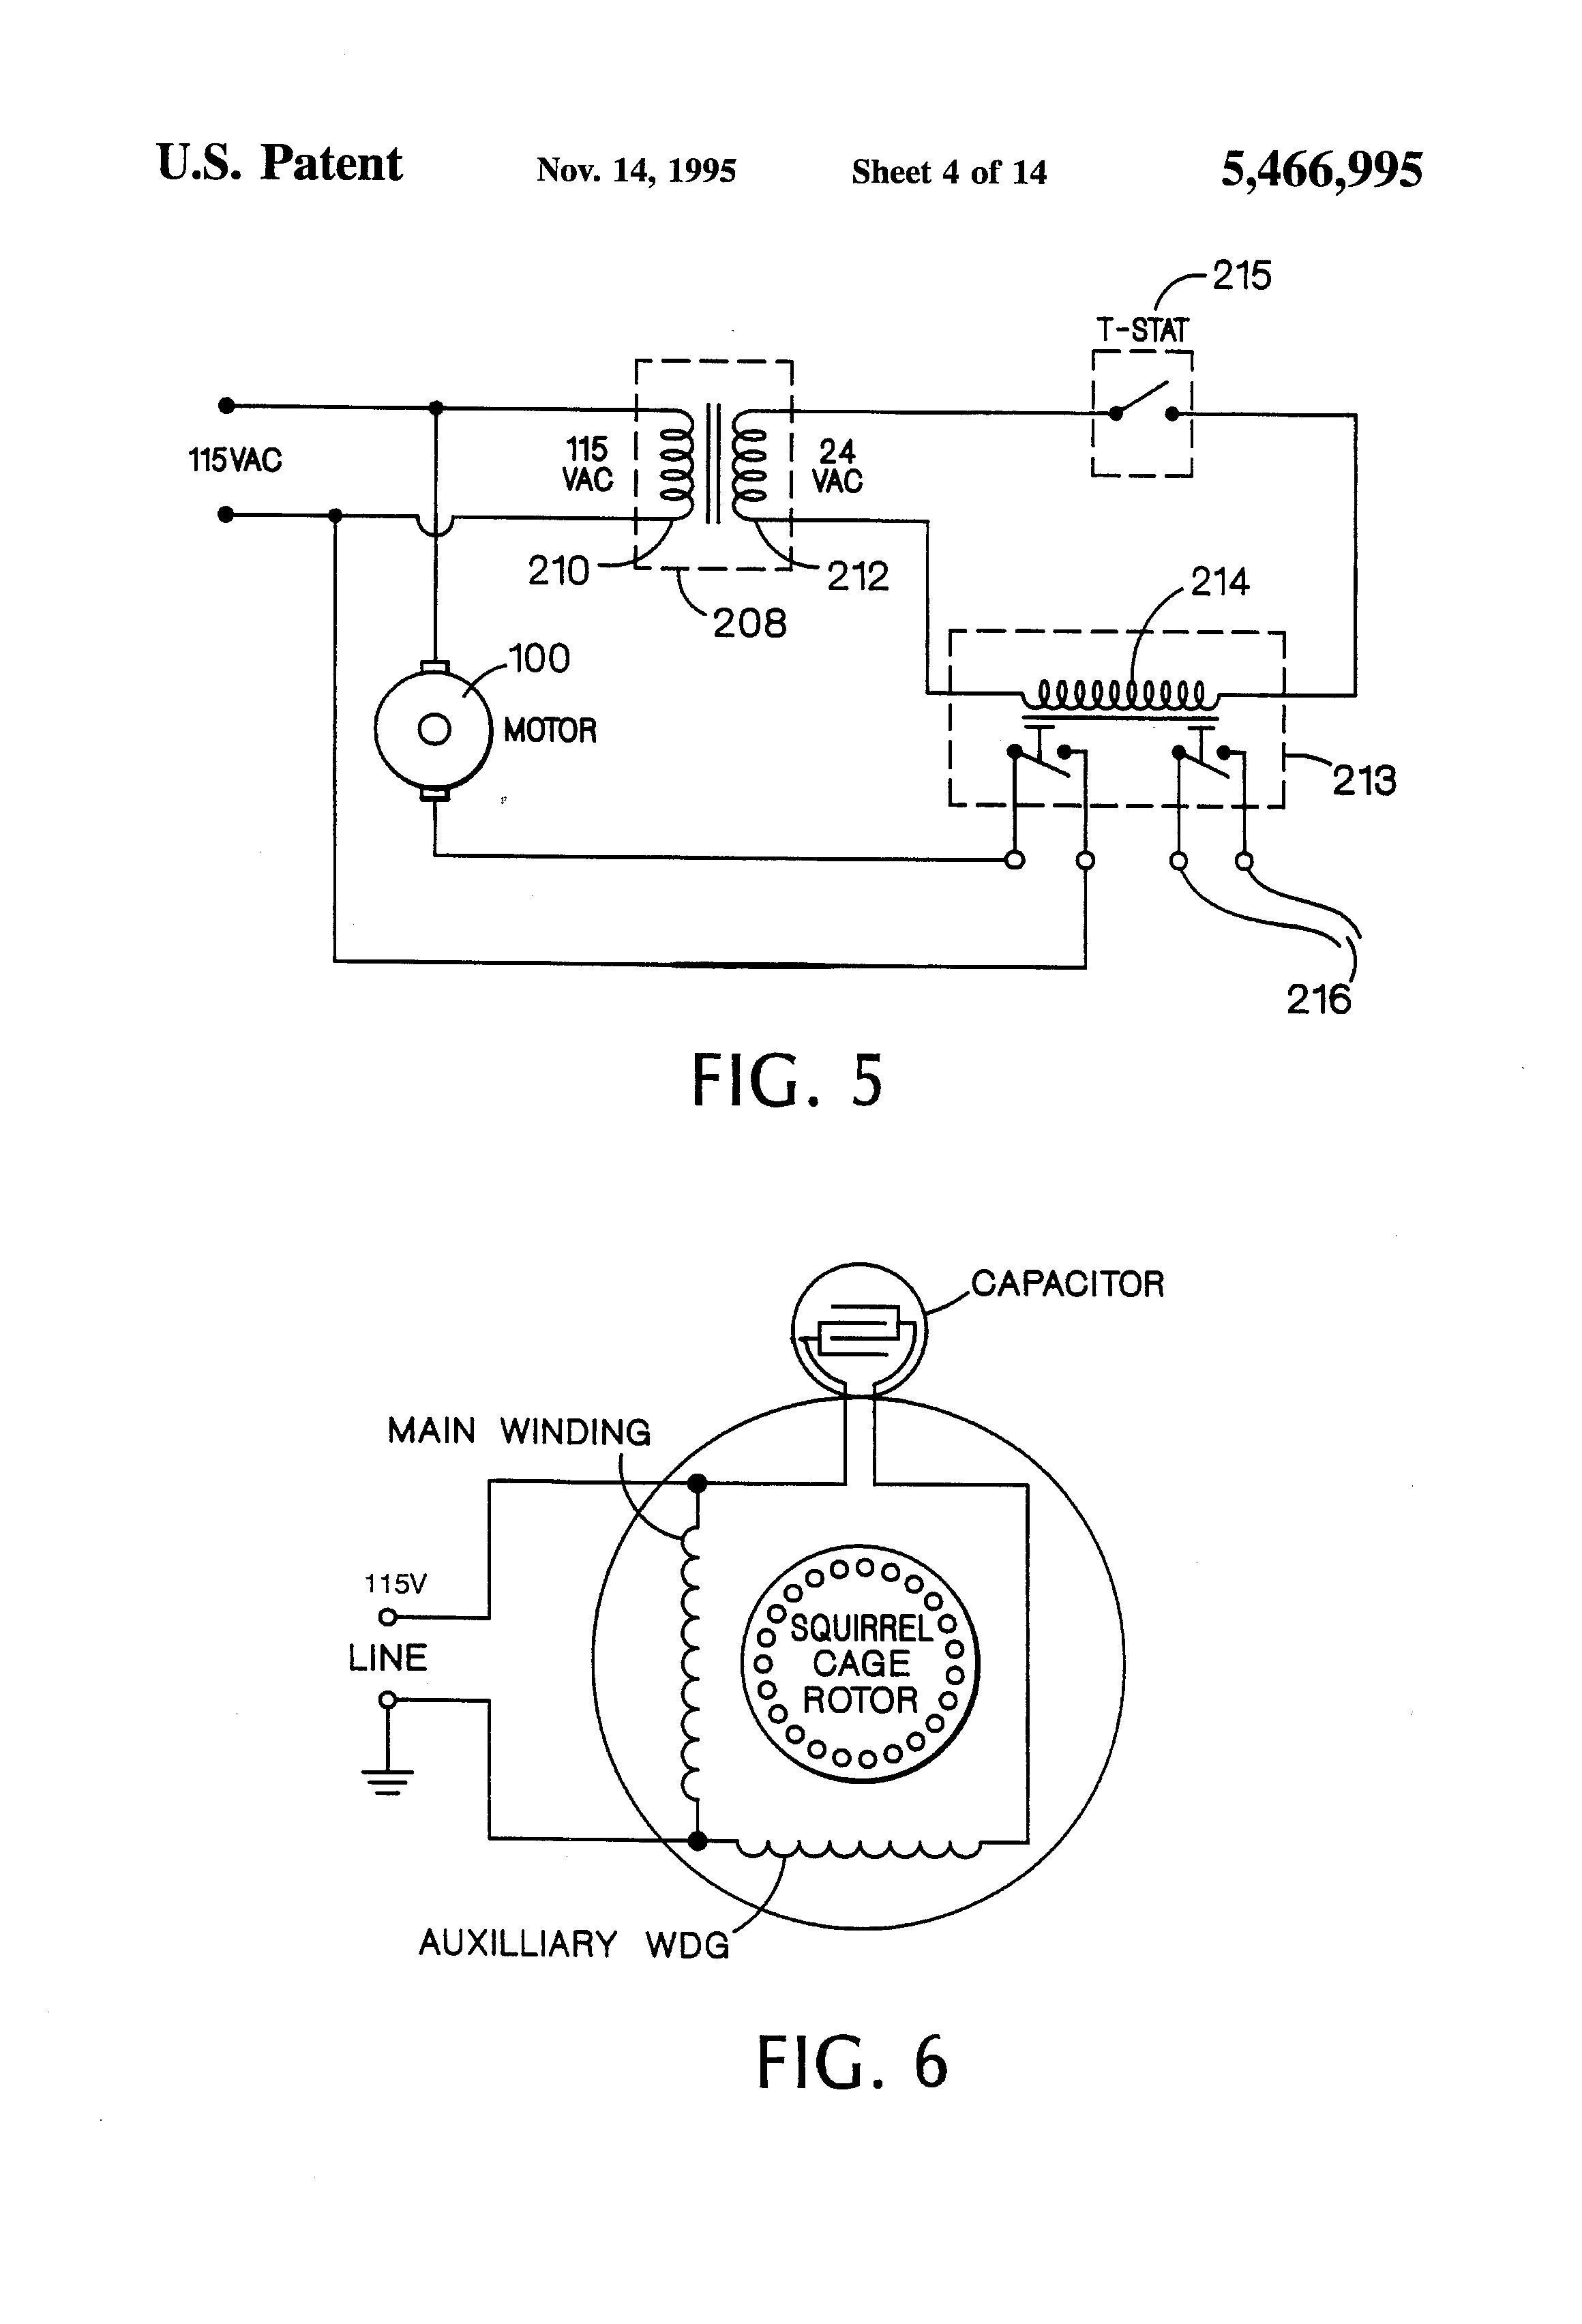 taco pump wiring diagram Taco Circulator Wiring Diagram patent us5466995 zoning circulator controller google patents taco cartridge circulator wiring diagram